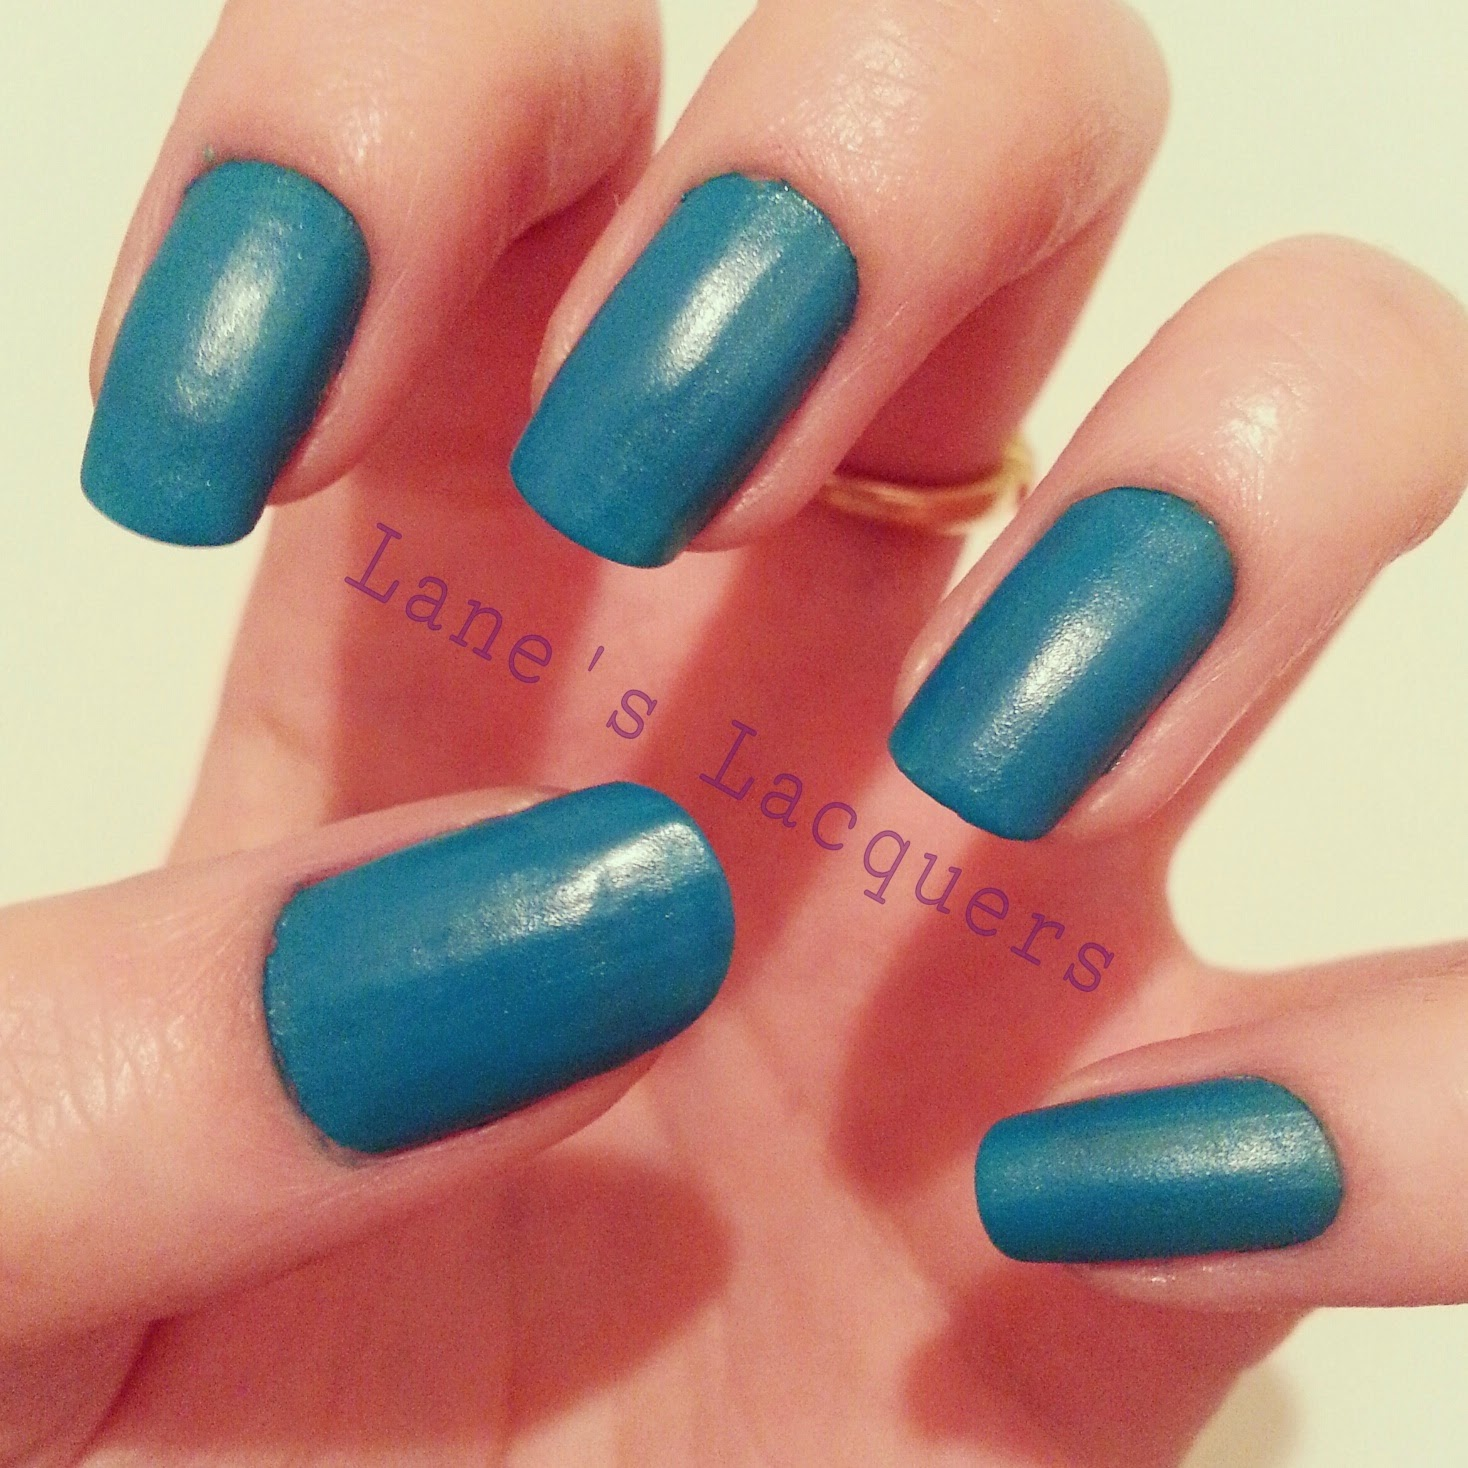 barry-m-cancun-swatch-manicure (1)